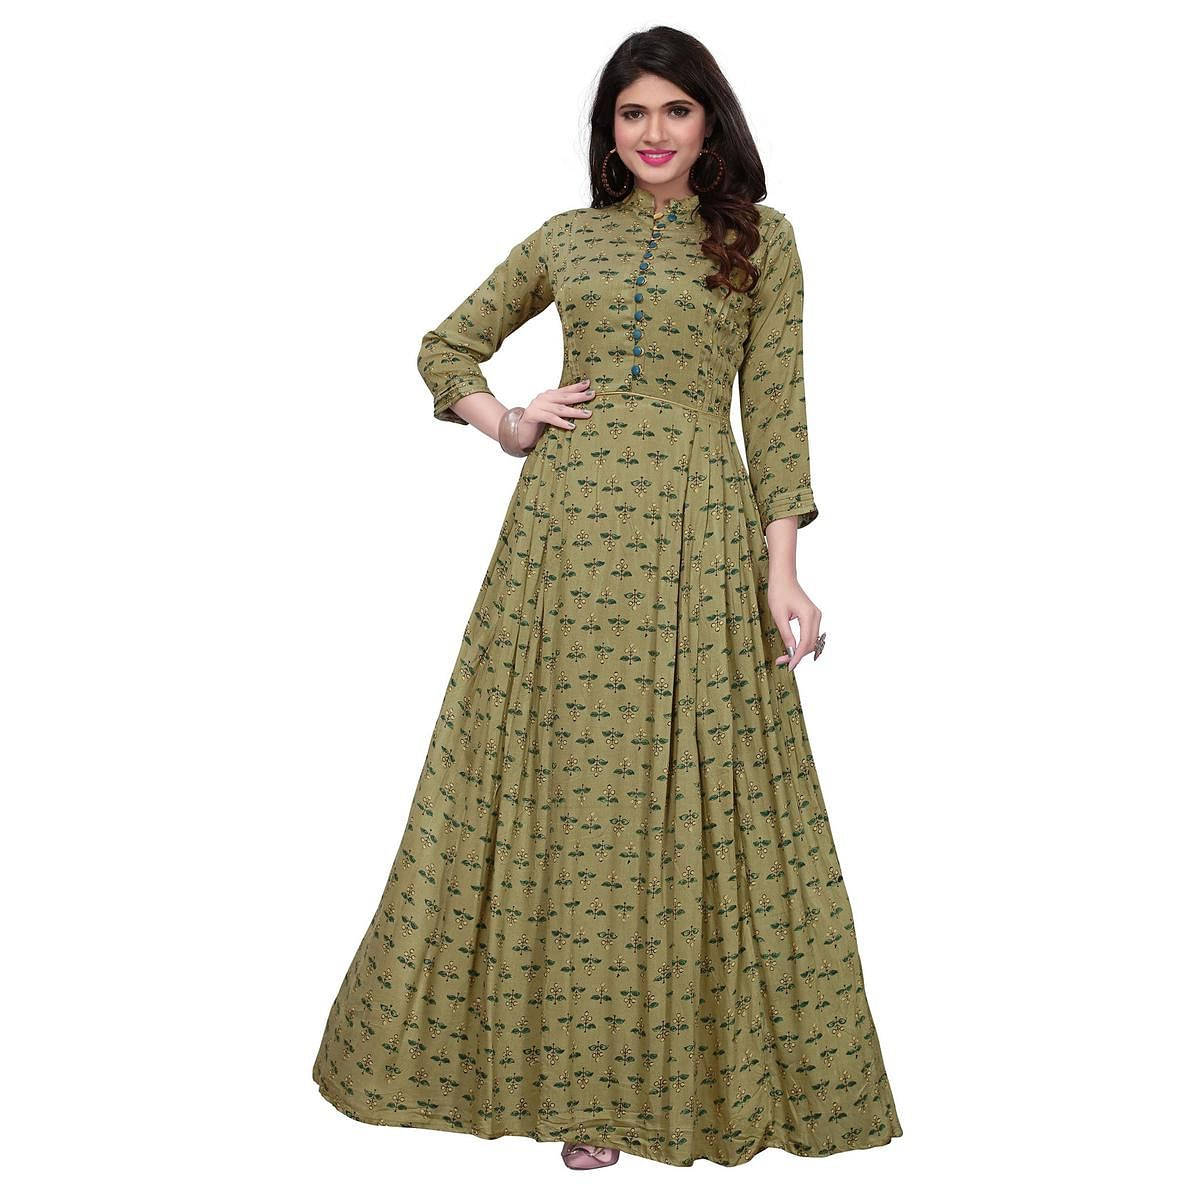 Classy Olive Green Colored Partywear Printed Rayon Long Kurti